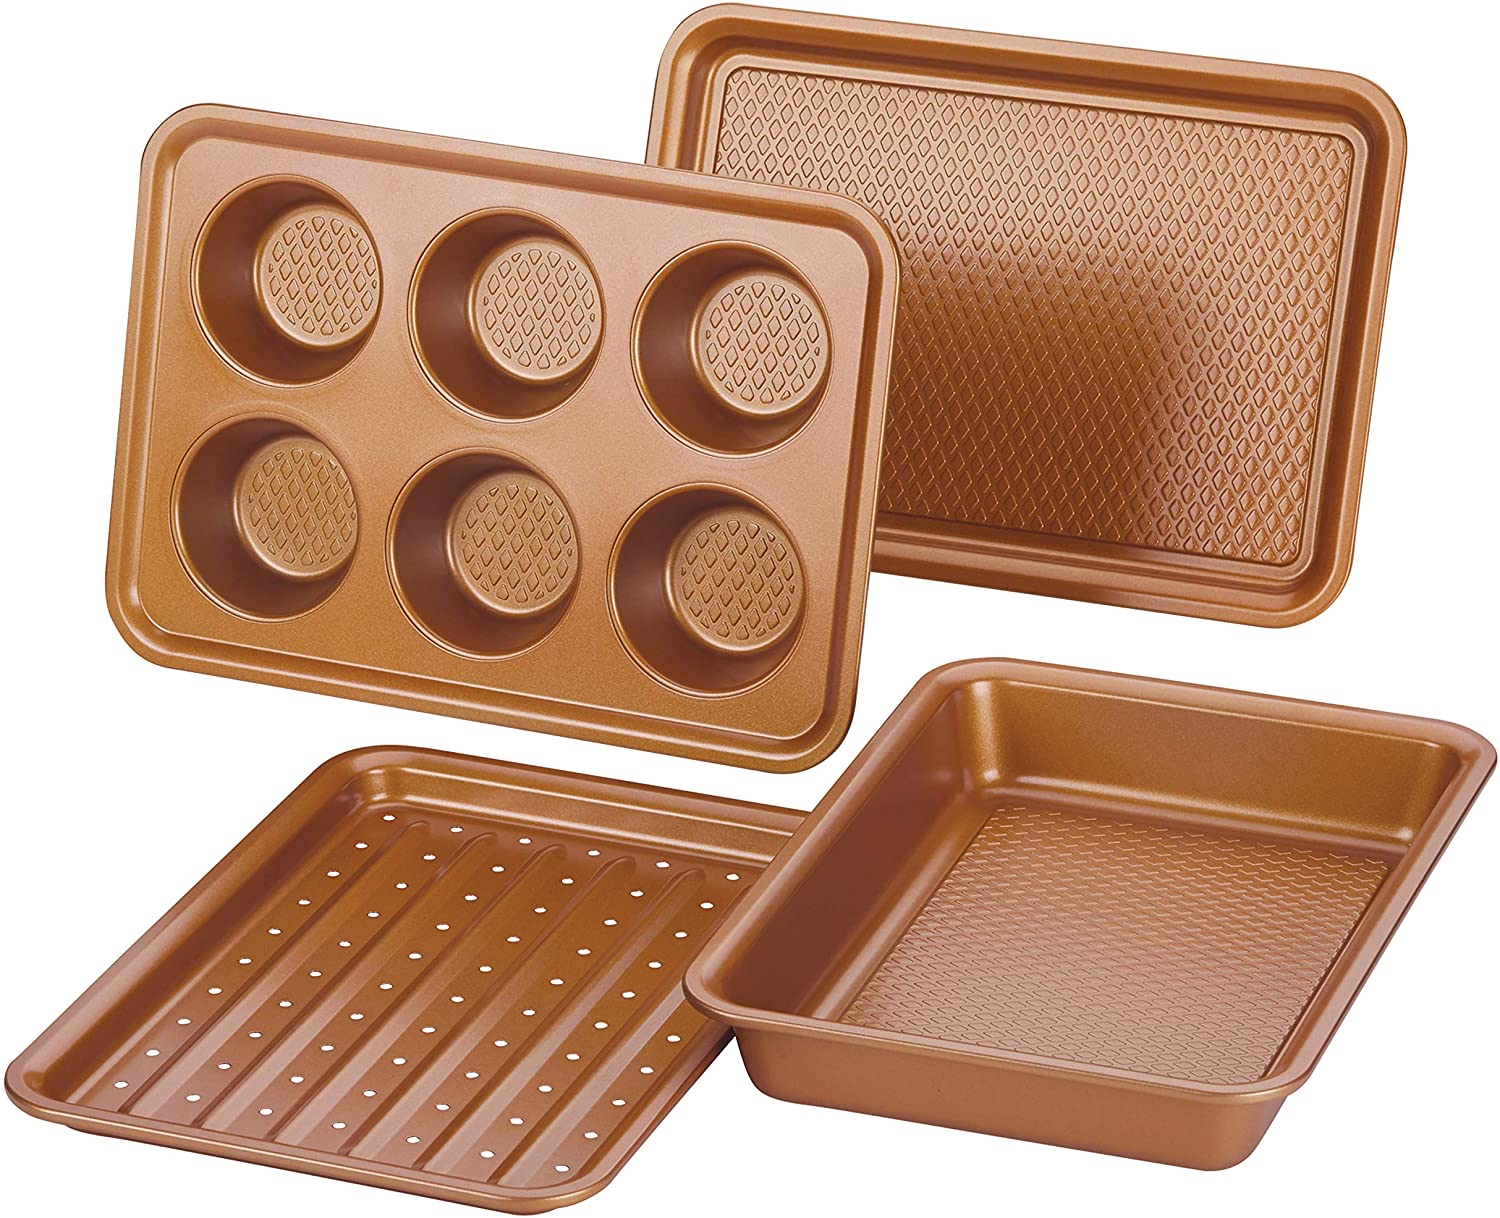 Ayesha Curry 47704 Nonstick Bakeware Toaster Oven Set with Nonstick Baking Pan, Cookie Sheet / Baking Sheet and Muffin Pan / Cupcake Pan - 4 Piece, Copper Brown